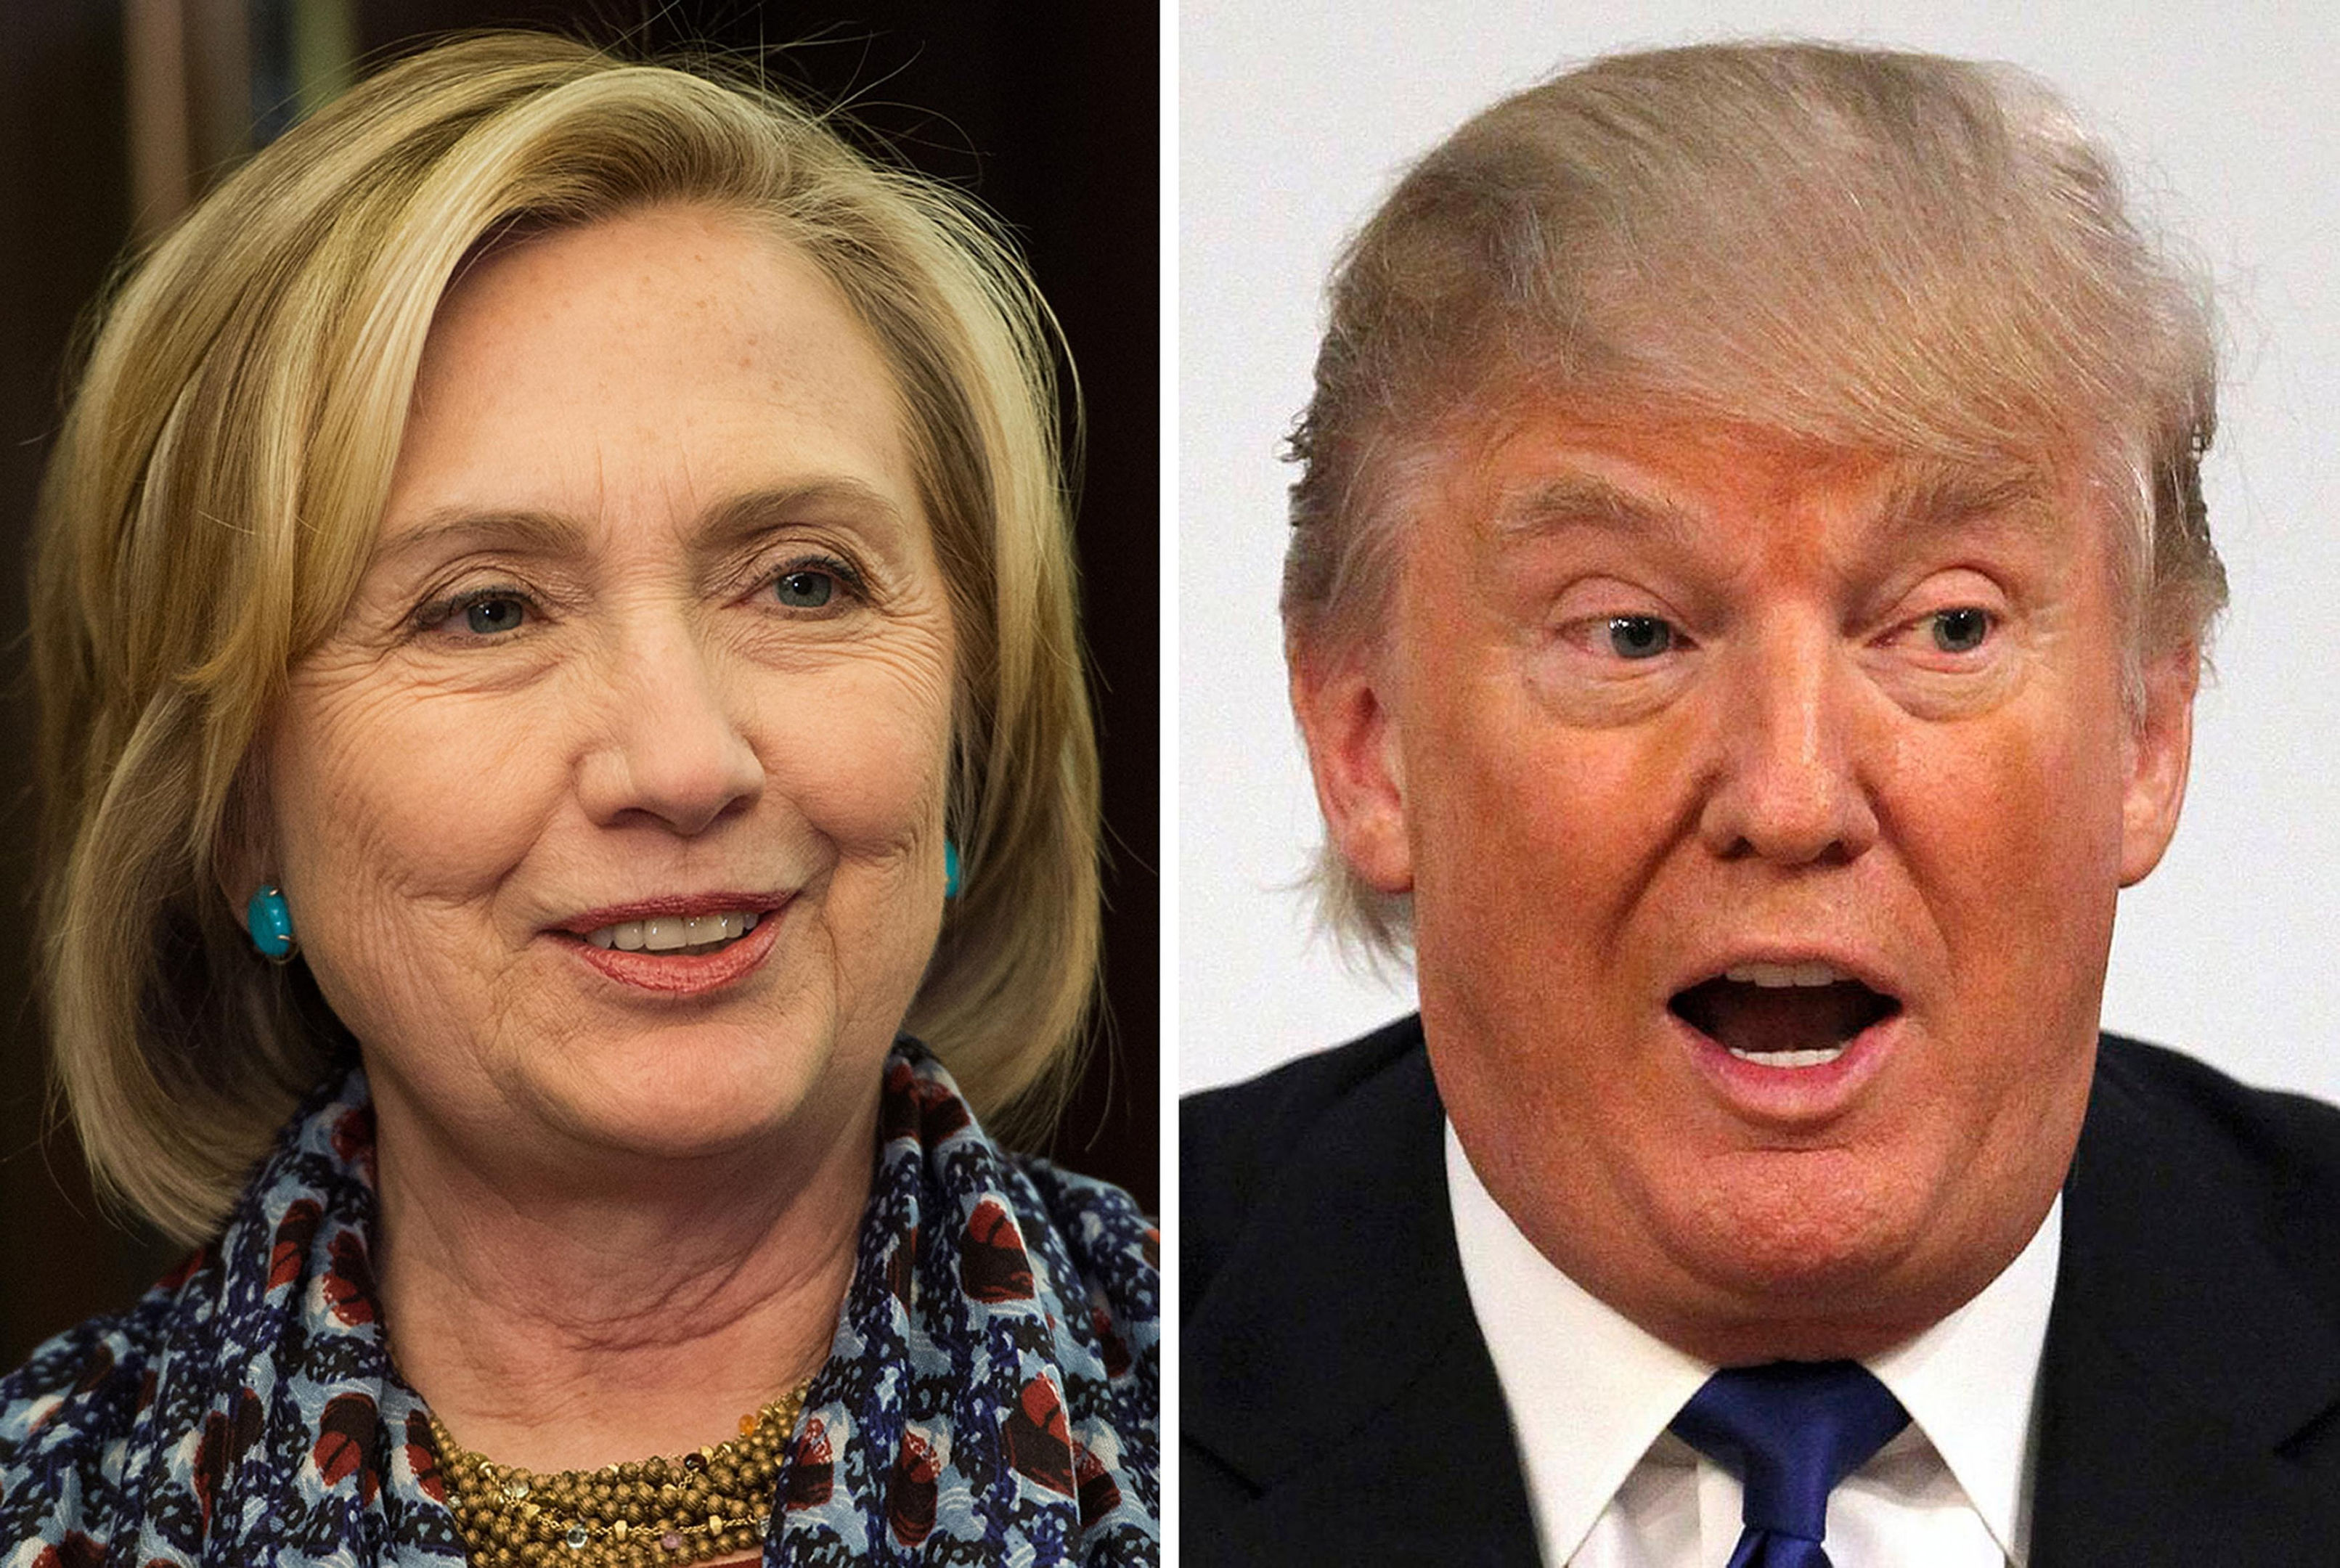 Donald Trump is set to claim victory over Hillary Clinton